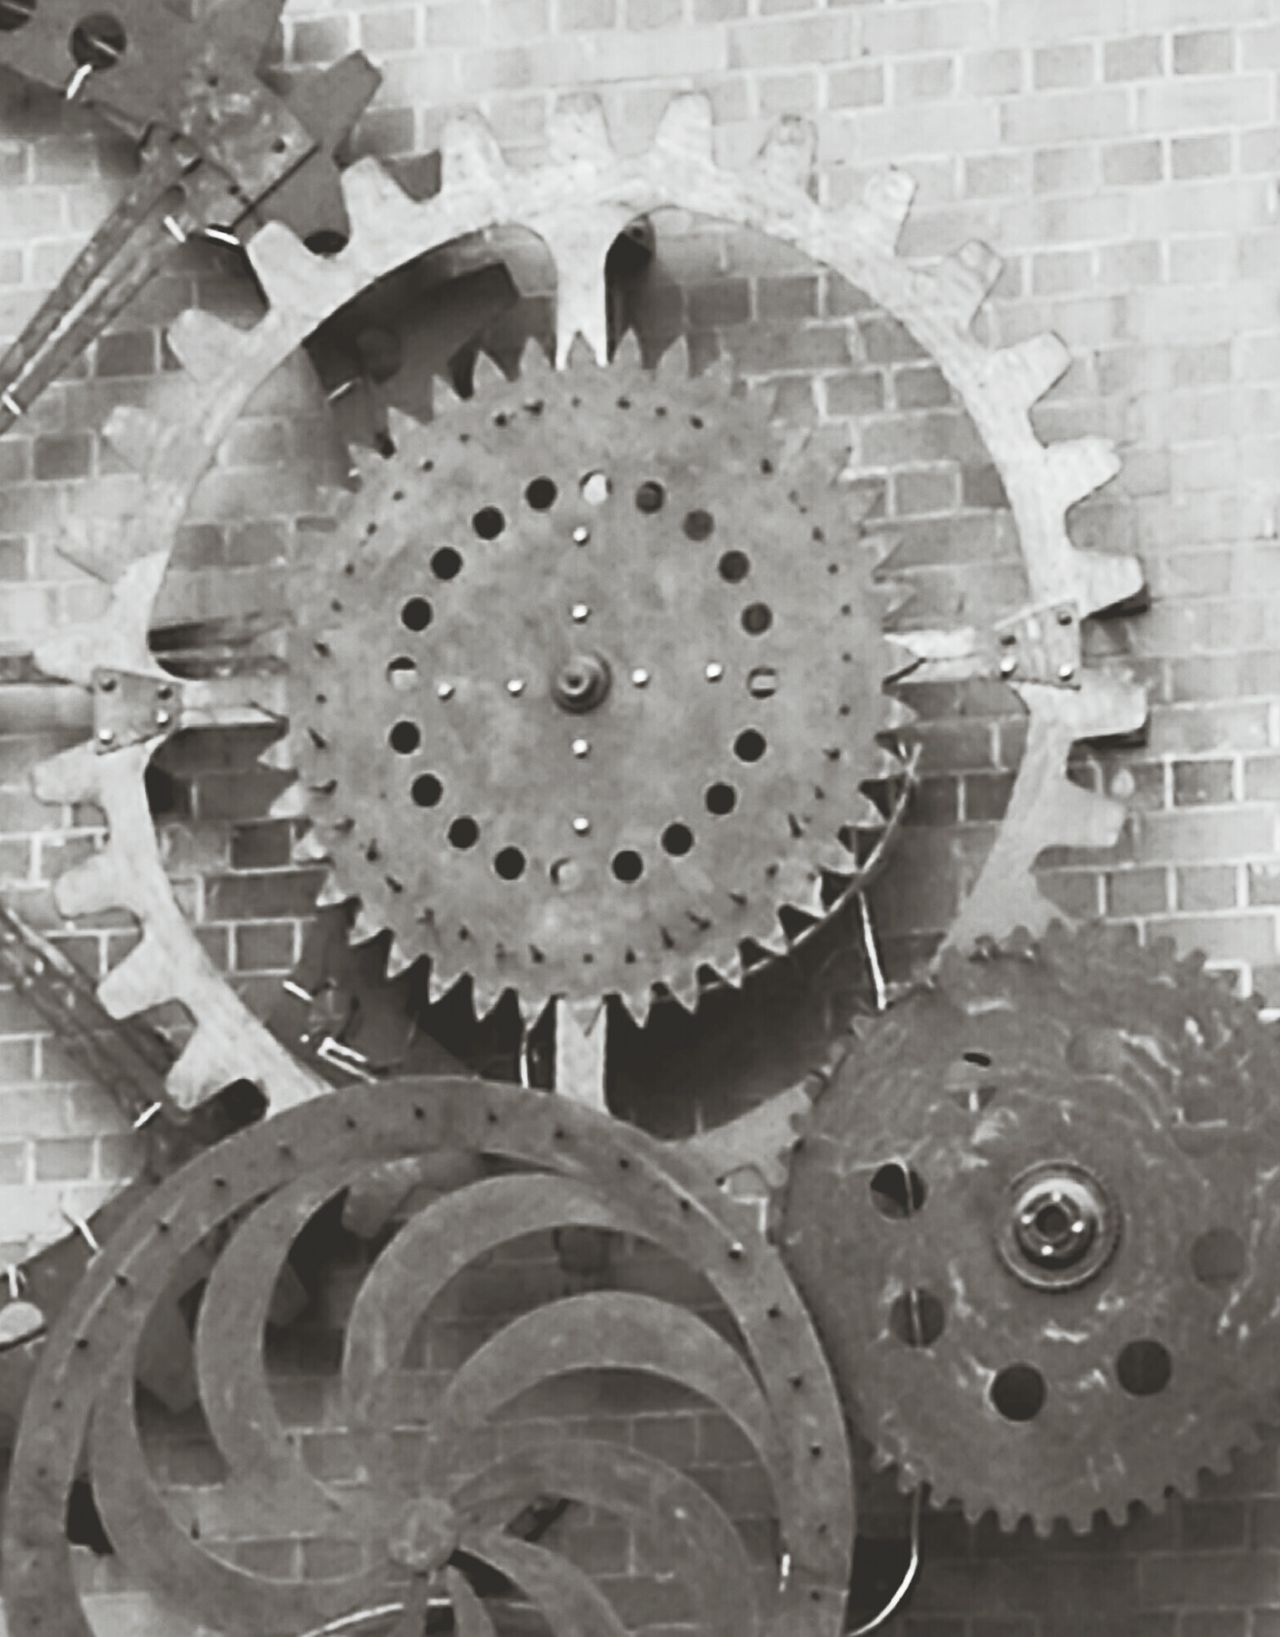 Gear Clock Metal Machinery Industry Machine Part No People Manufacturing Equipment Factory Teamwork Close-up Interlocked Clock Face Industrial Equipment Minute Hand Clockworks Day